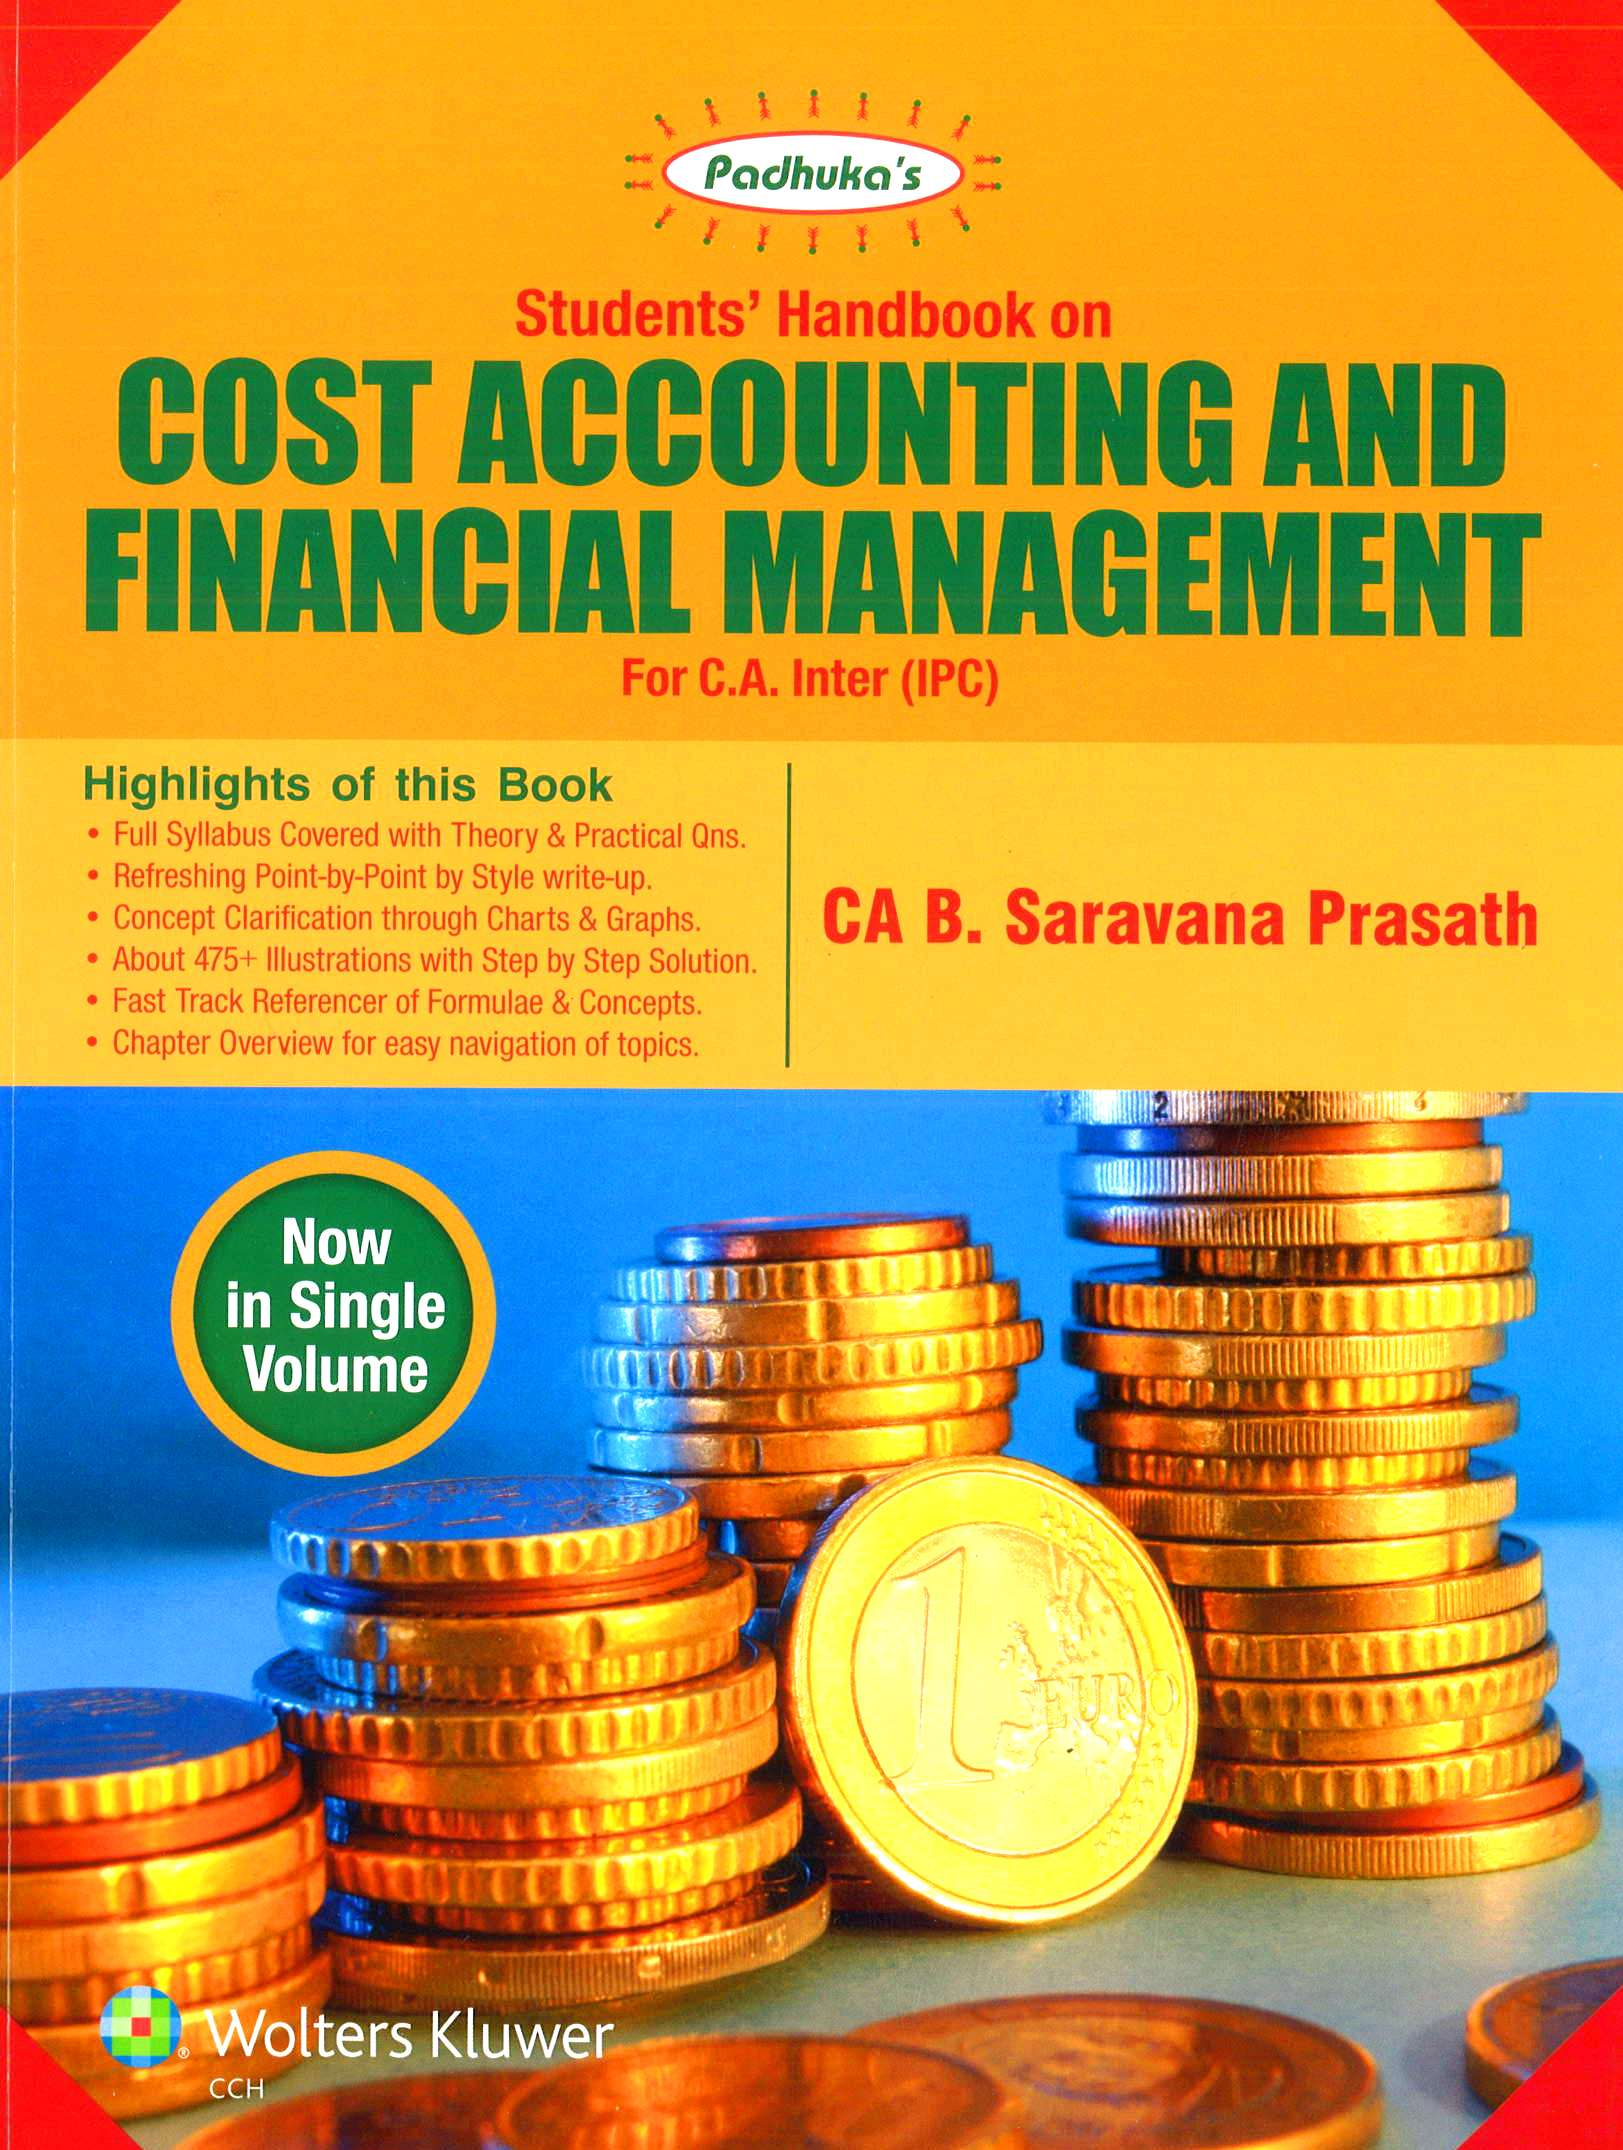 Wolters Kluwer Students' Handbook on Cost Accounting and Financial Management for CA-Intermediate (IPC) by CA B. Saravana Prasath (Wolters Kluwer Publishing) Edition 11th, 2016